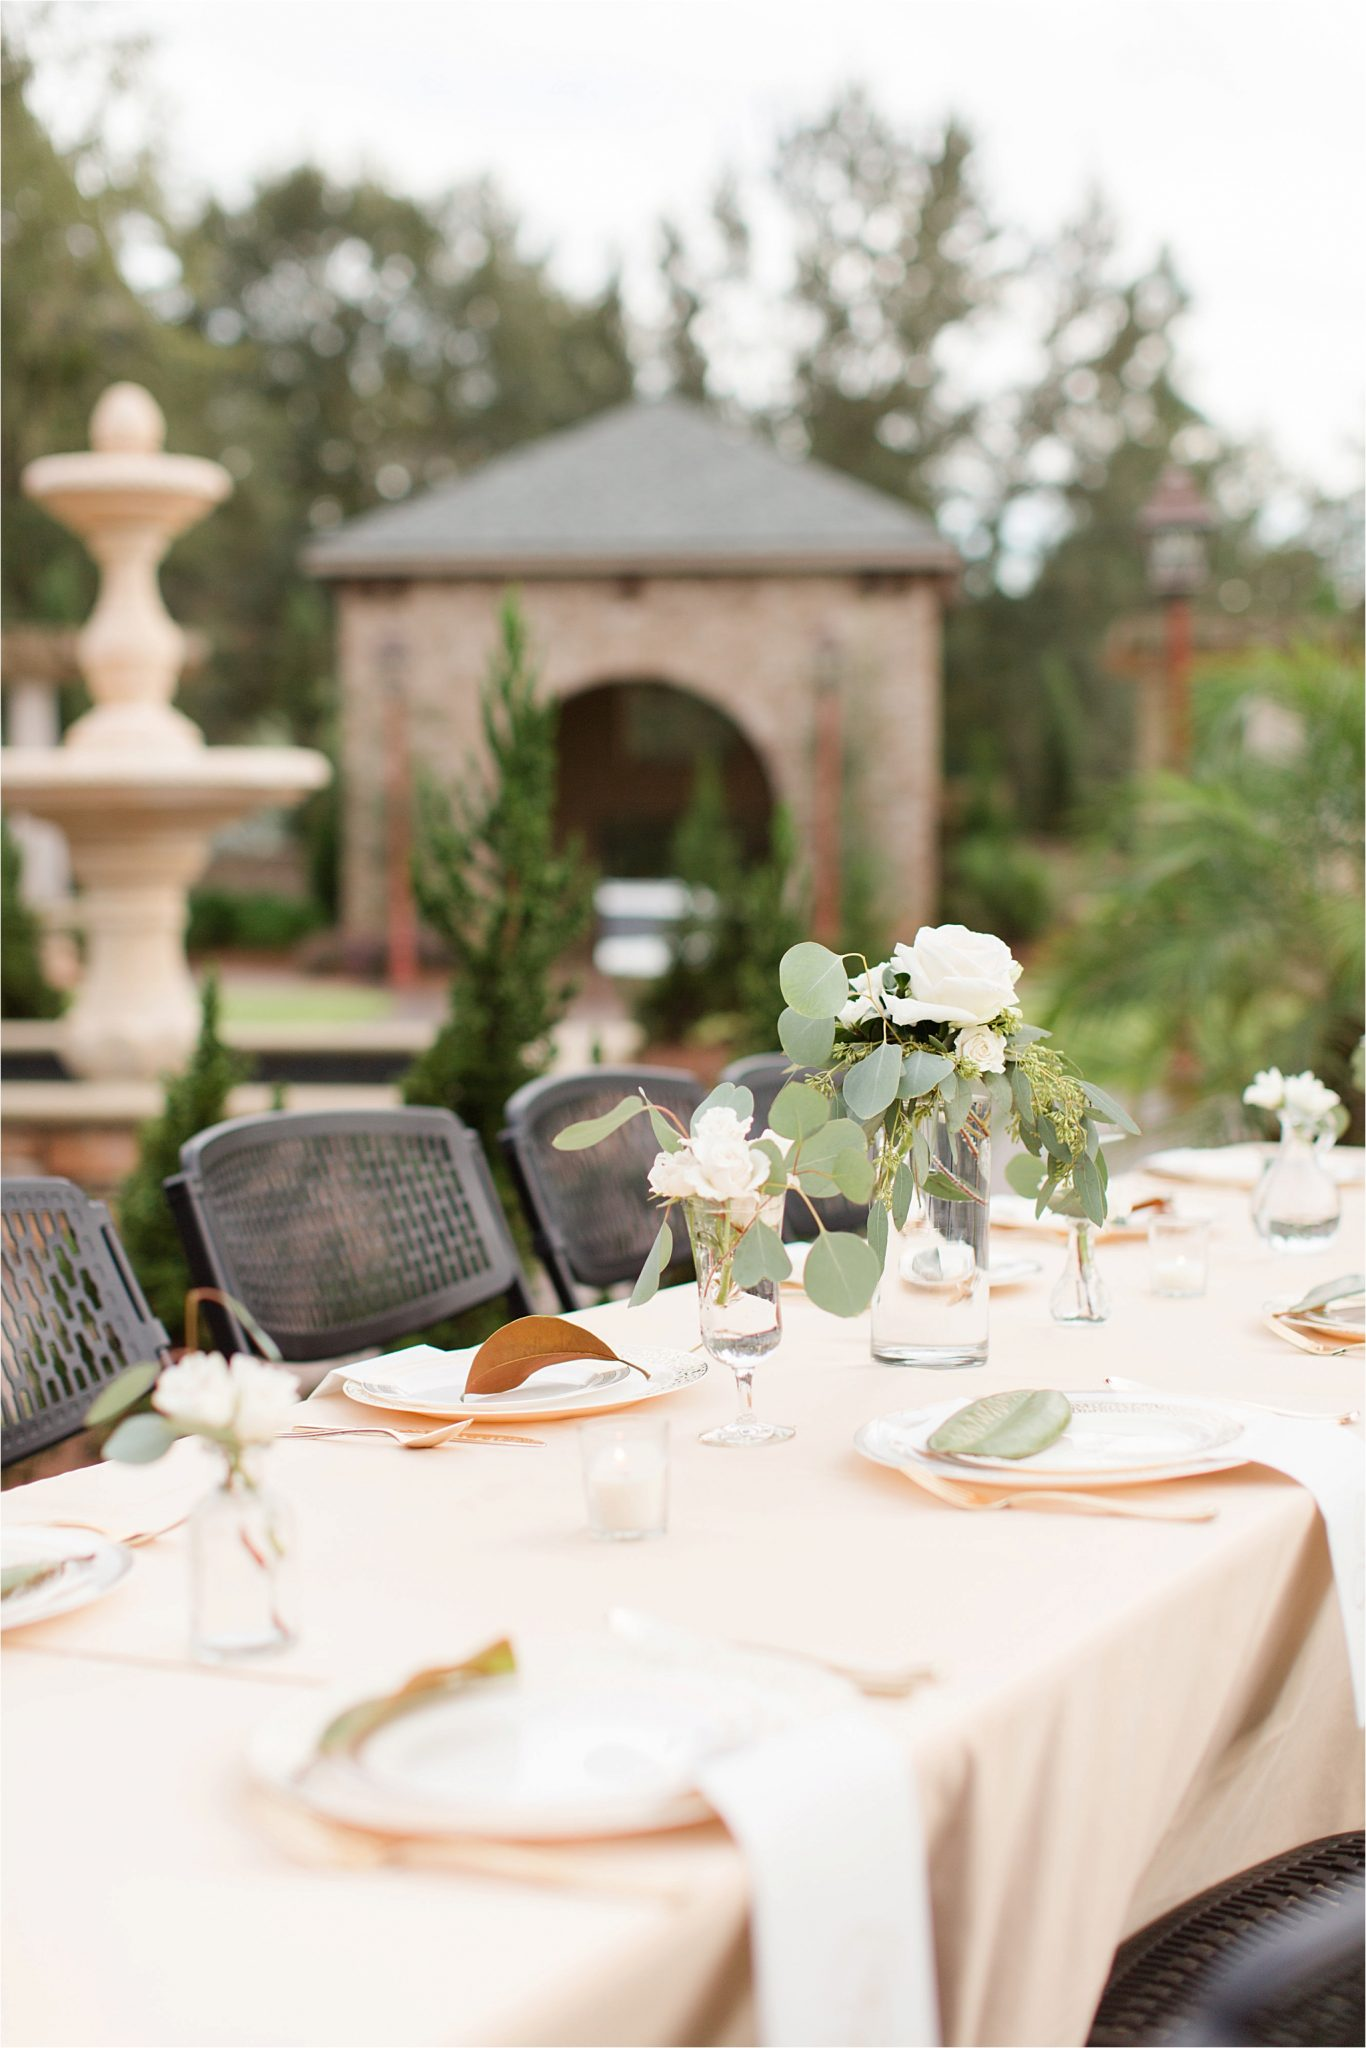 wedding-reception-table-settings-centerpieces-champagnes-neutrals